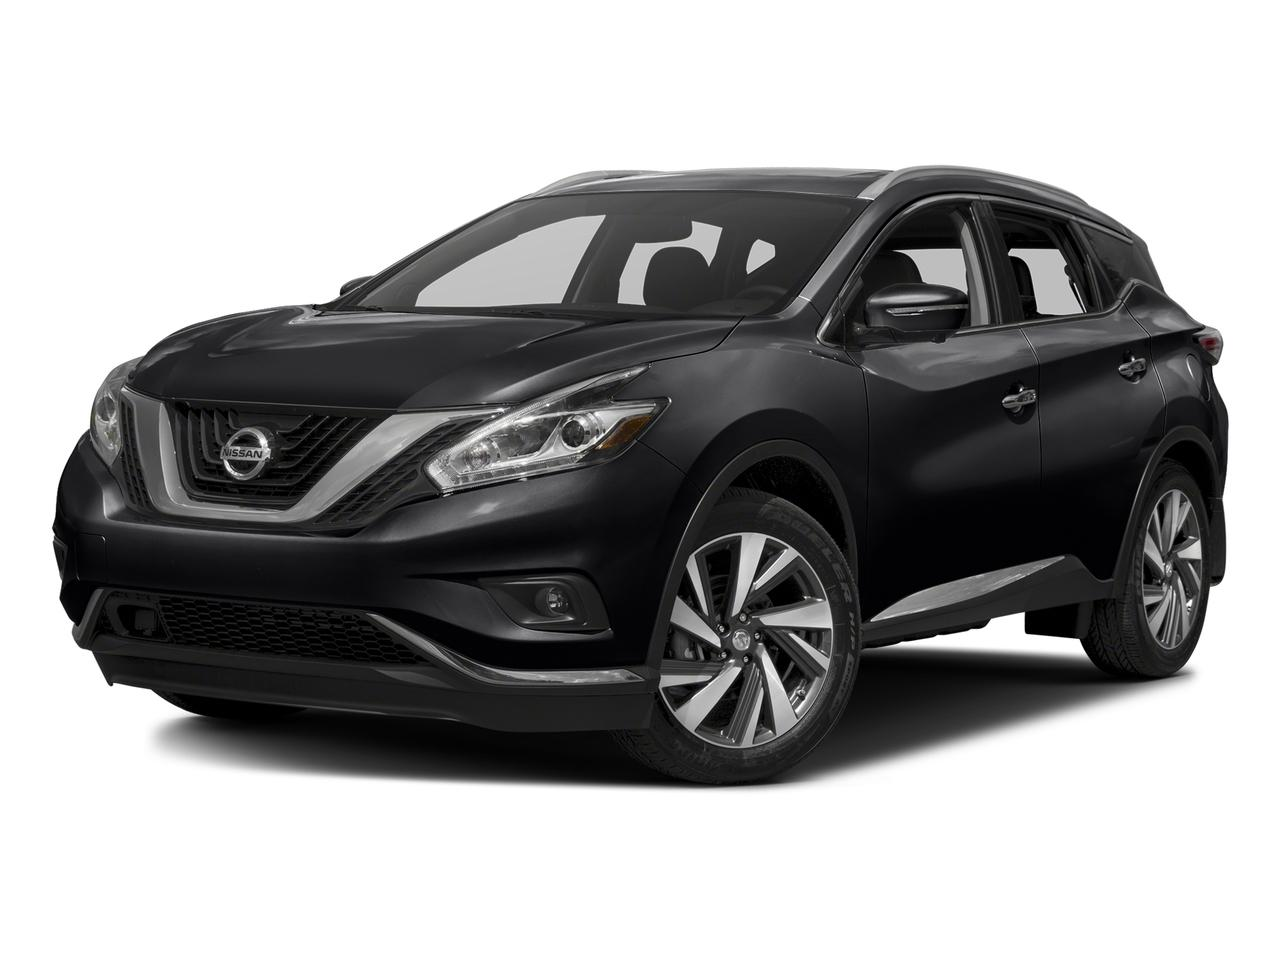 2015 Nissan Murano Vehicle Photo in VINCENNES, IN 47591-5519